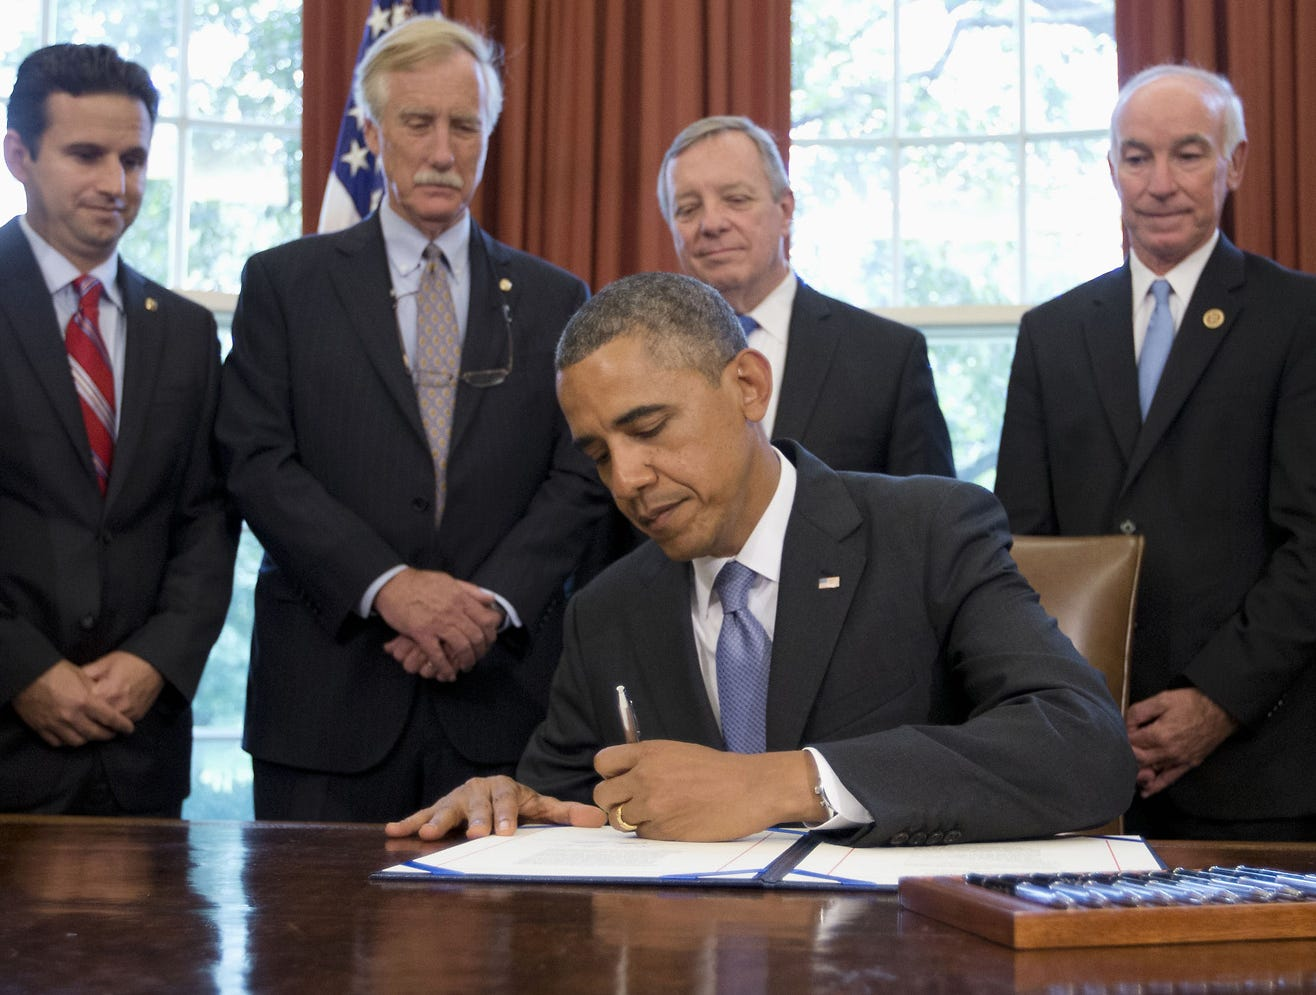 Officials watch as President Obama signs a bipartisan bill to cut student loan interest rates  Aug. 9 at the White House. Aug. 13 is International Left-Handers Day.